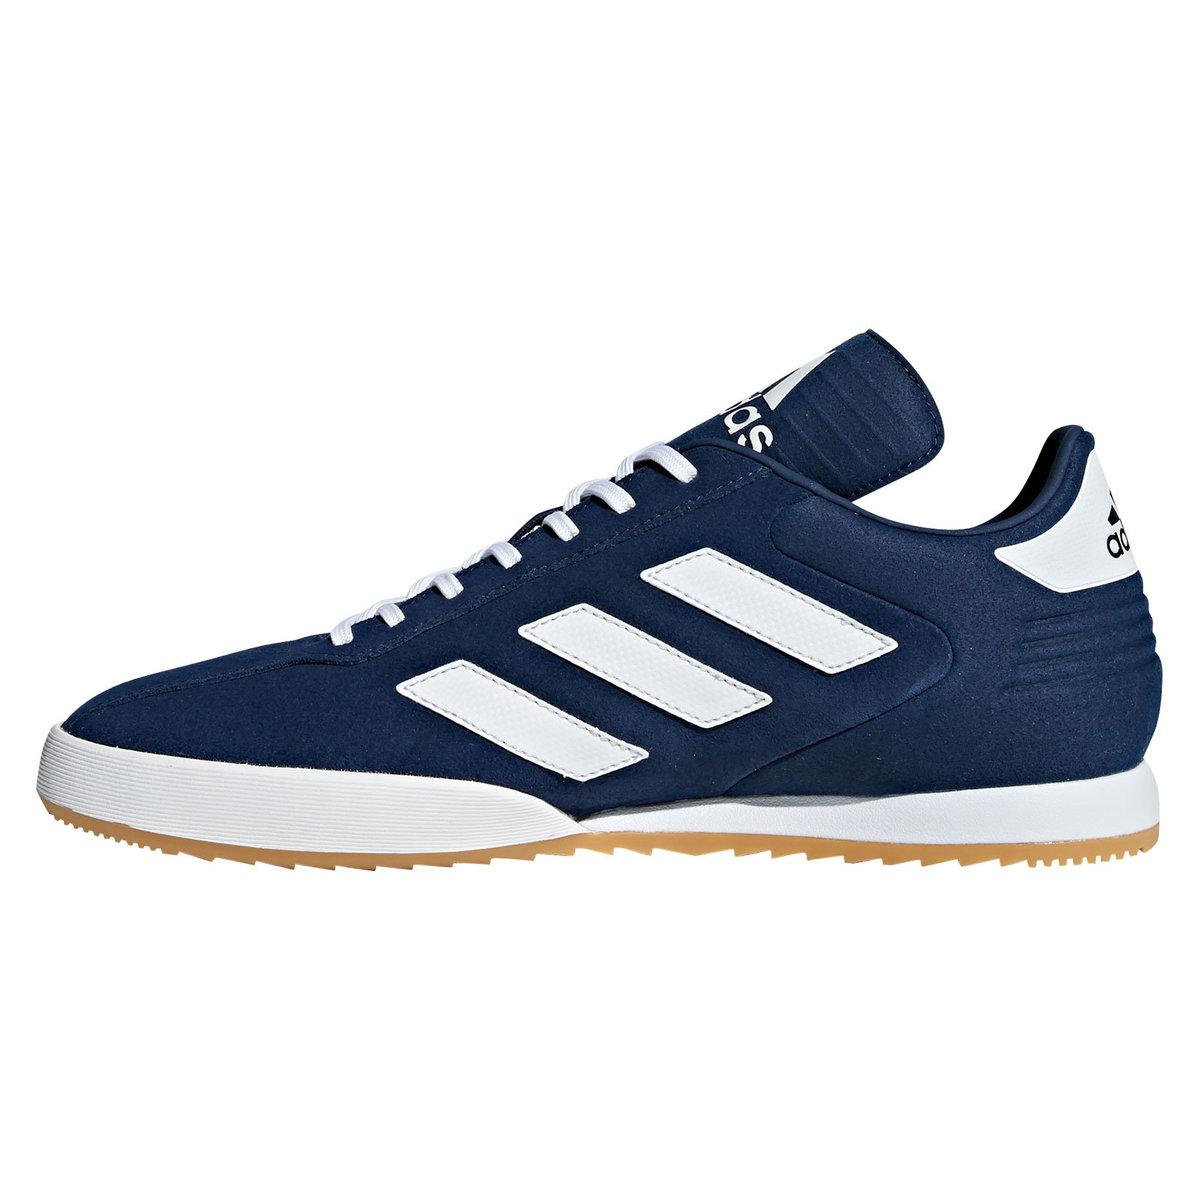 watch 2fdca 317cd ... Adidas - Blue Copa Super Shoes for Men - Lyst.